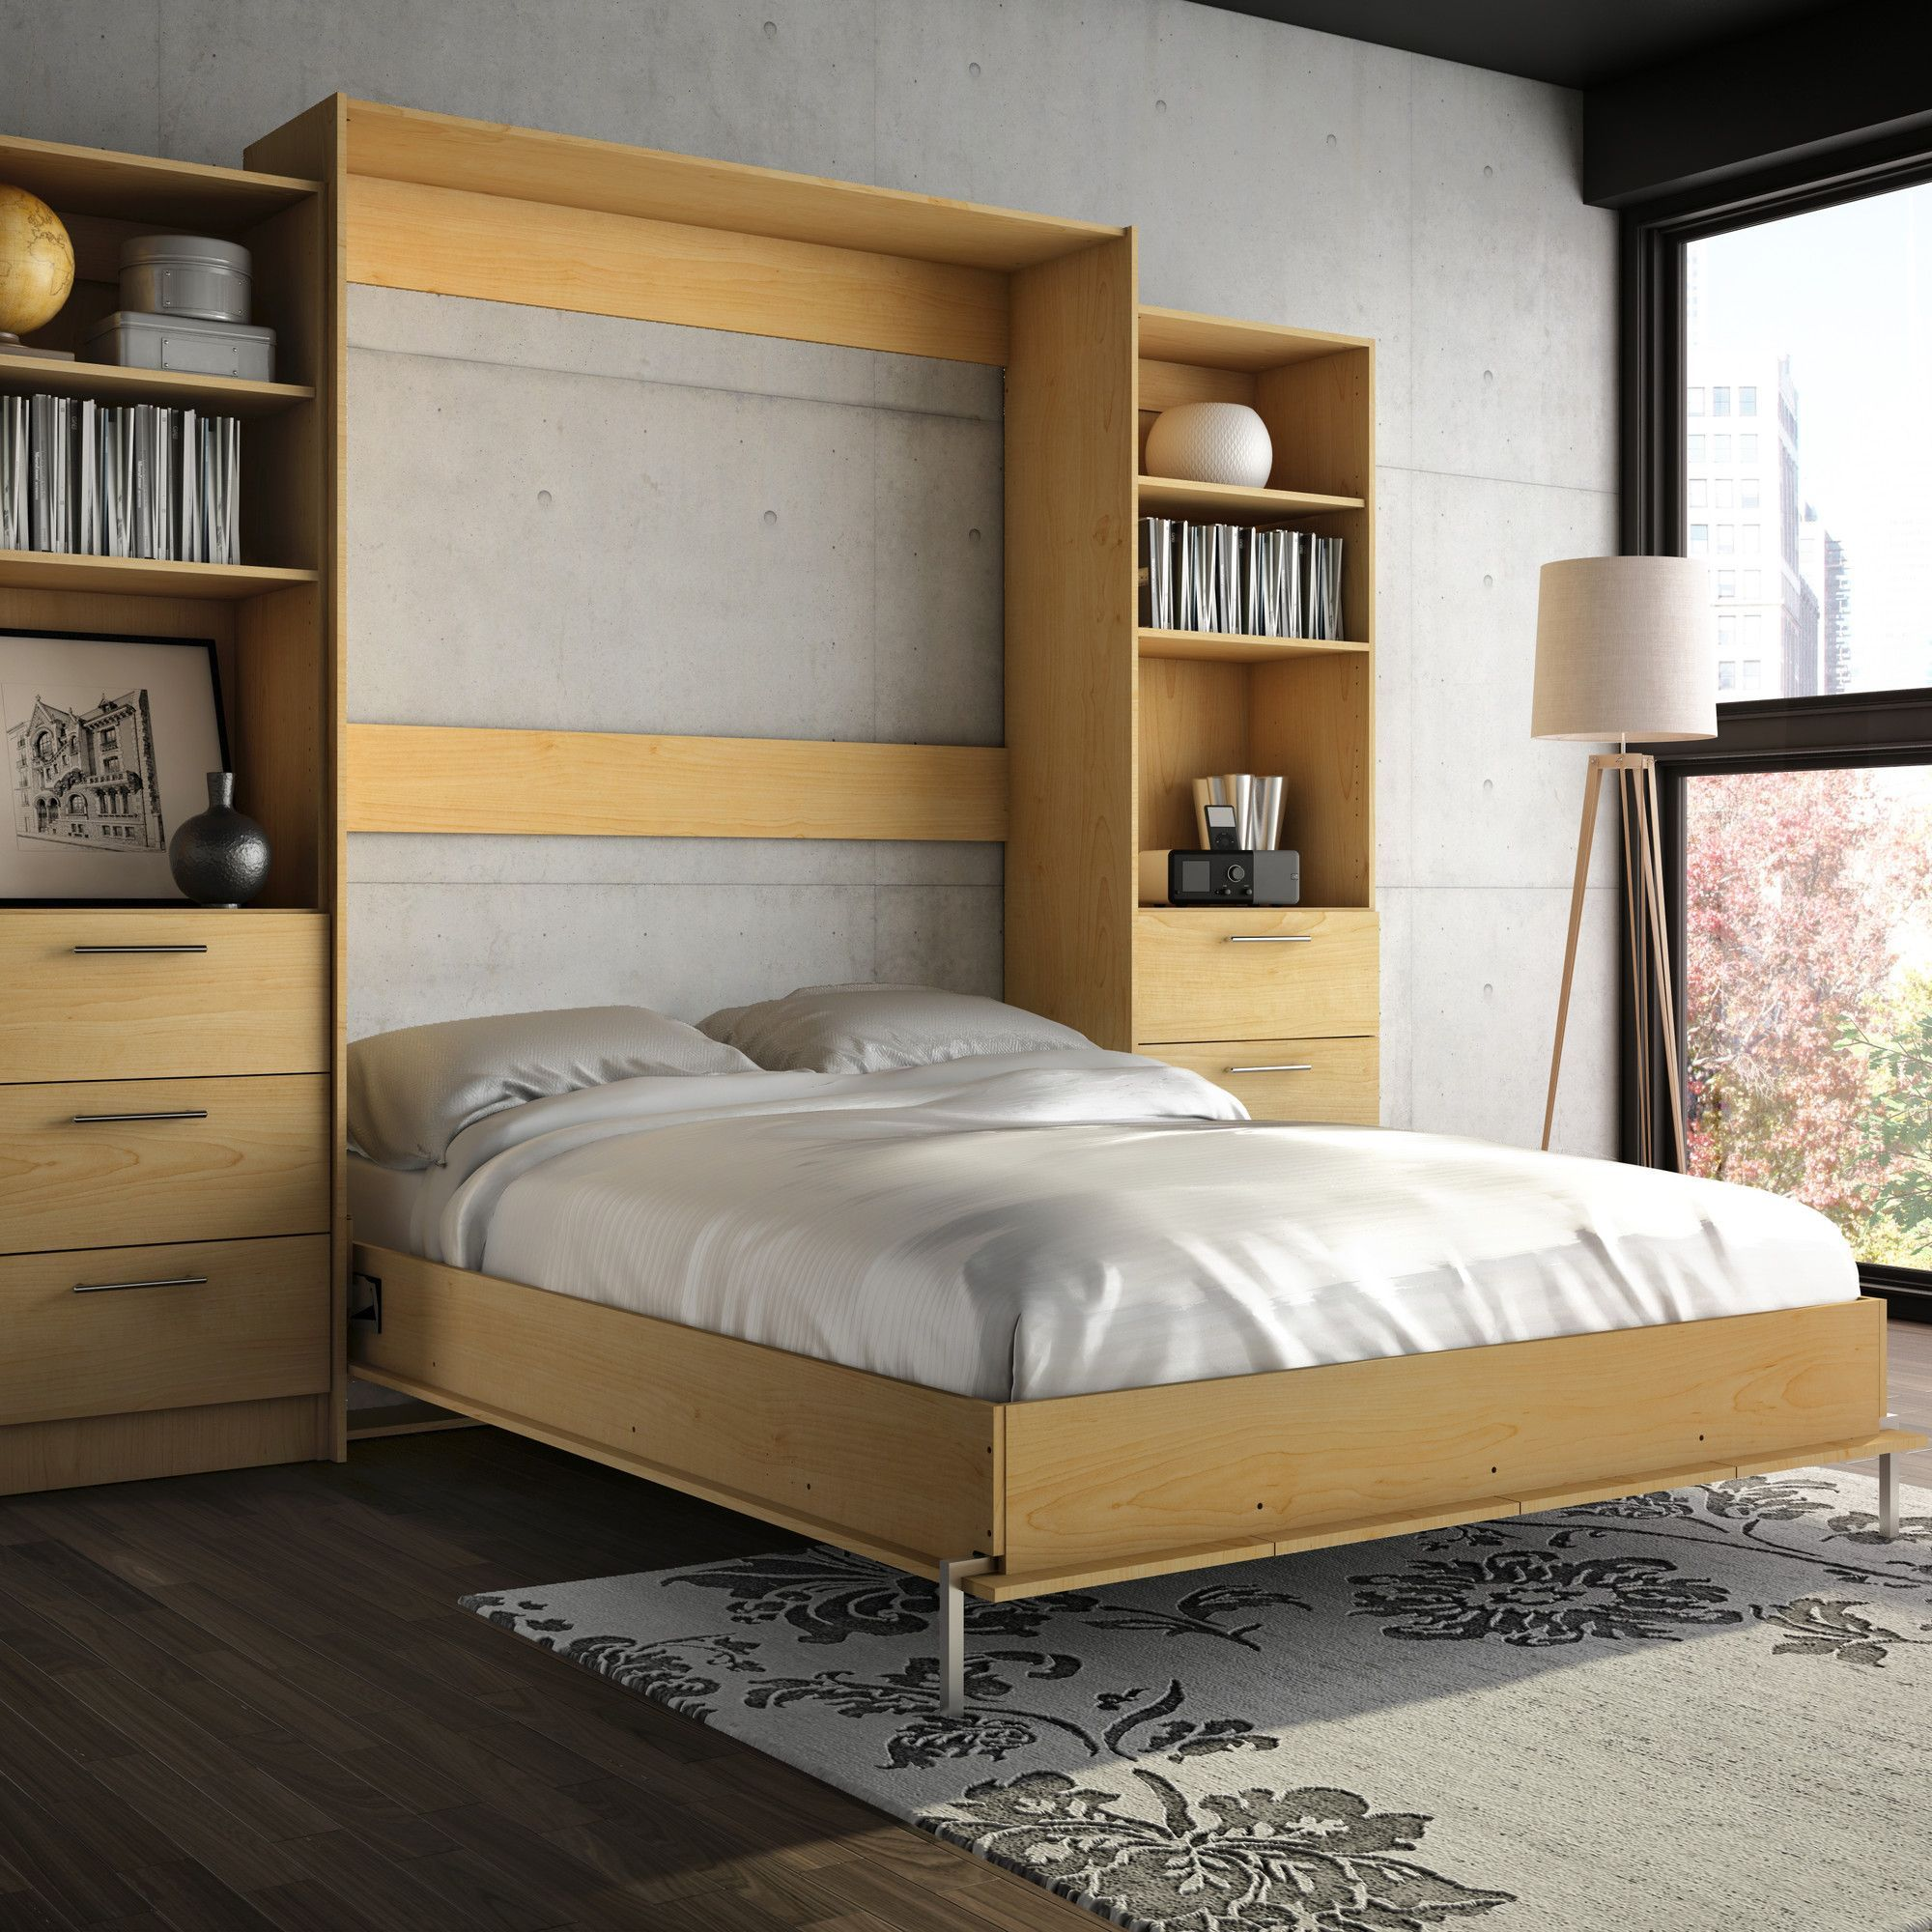 4 bedroom loft  FREE SHIPPING Shop Wayfair for Stellar Home Furniture Wall Bed